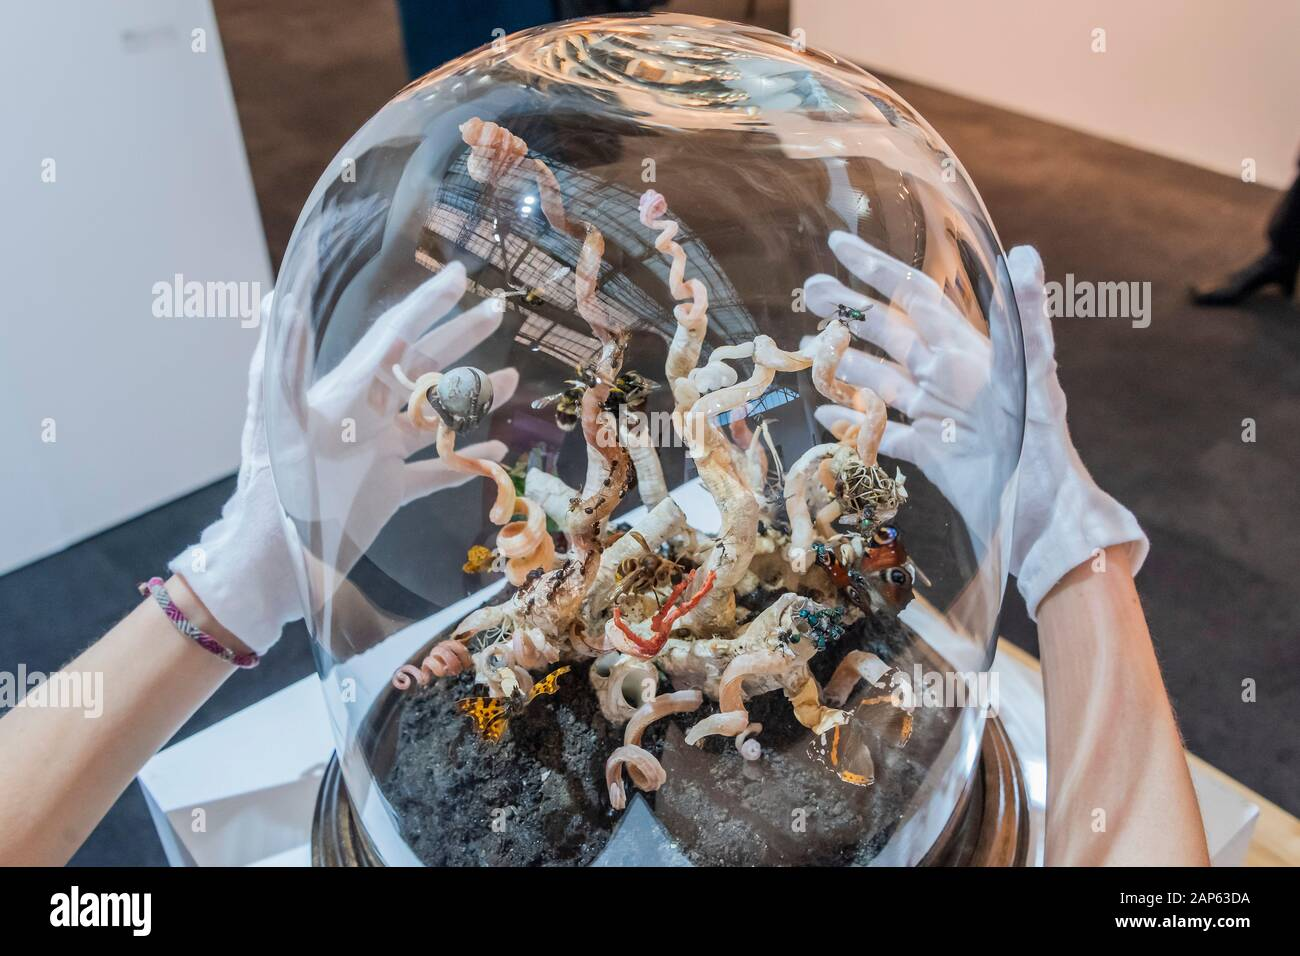 Islington, London, UK. 21st Jan, 2020. An Eruption by Tessa Farmer in the Bo-Lee gallery - - The London Art Fair, at the Business Design Centre in Islington. Includes international galleries selling modern and contemporary artworks. Credit: Guy Bell/Alamy Live News Stock Photo